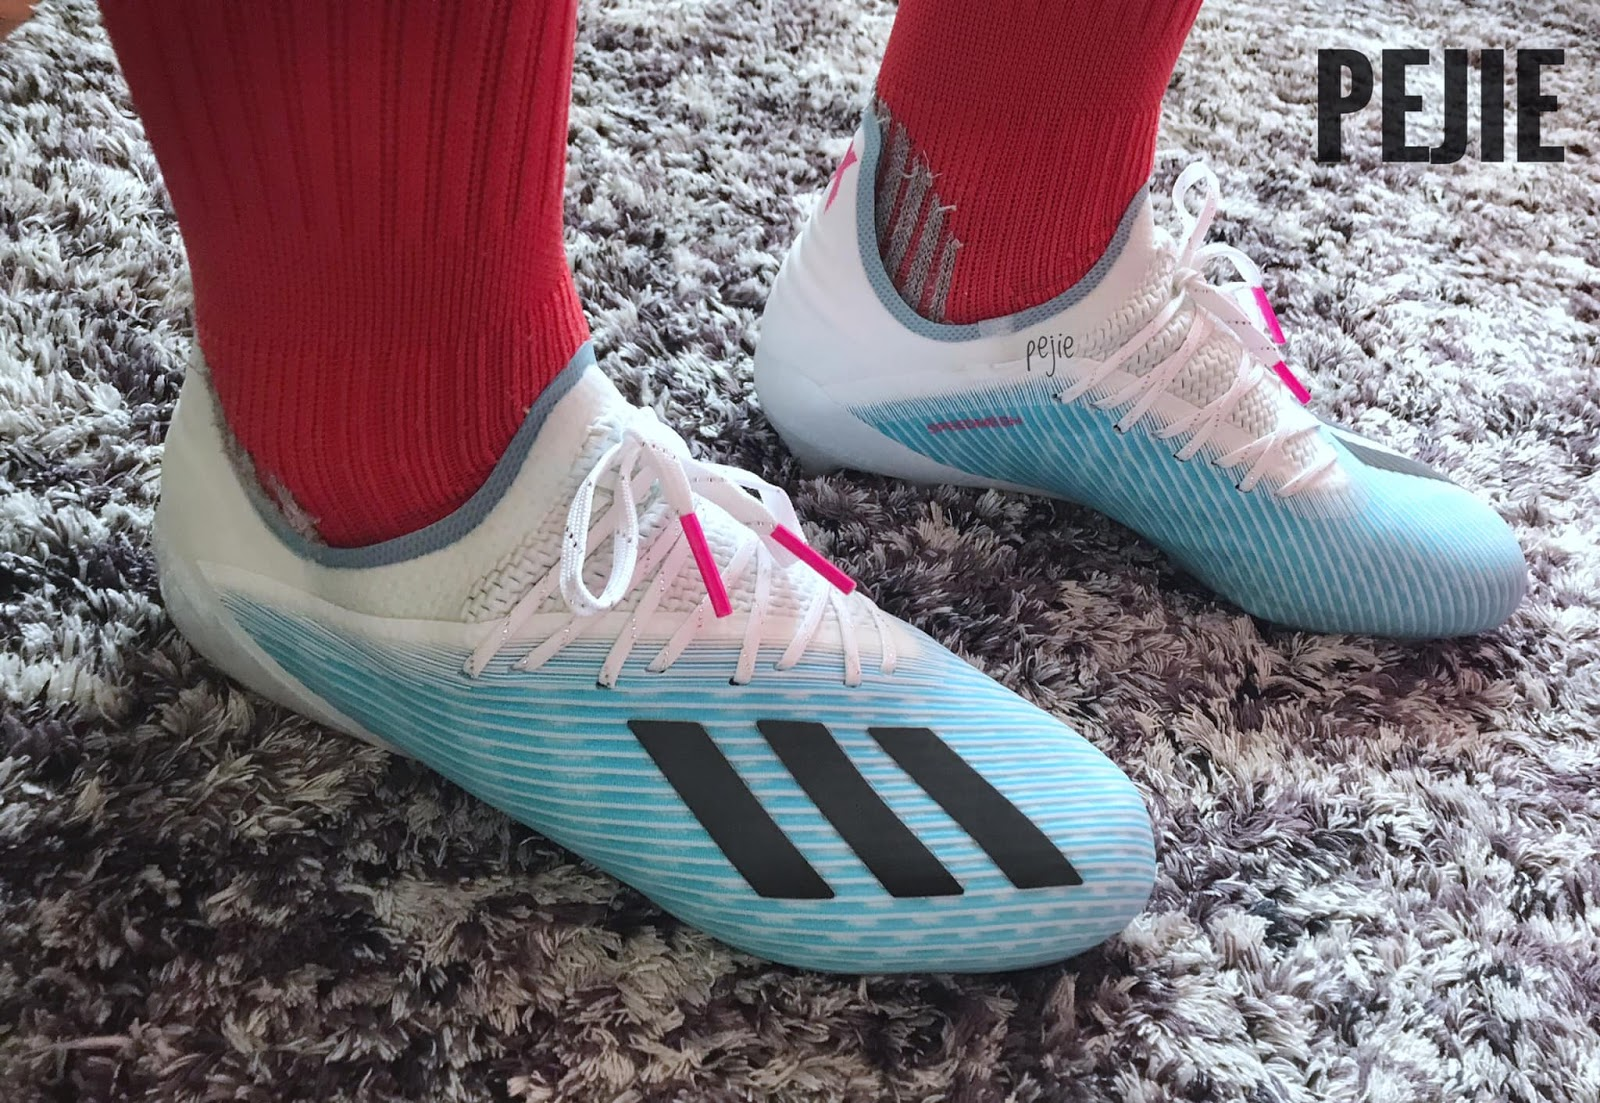 ce05b0d6b1fa As for features, the next-gen Adidas X 19+ and 19.1 boots are practically  the same as their X 18 predecessors. The boots still feature the same  Speedmesh ...